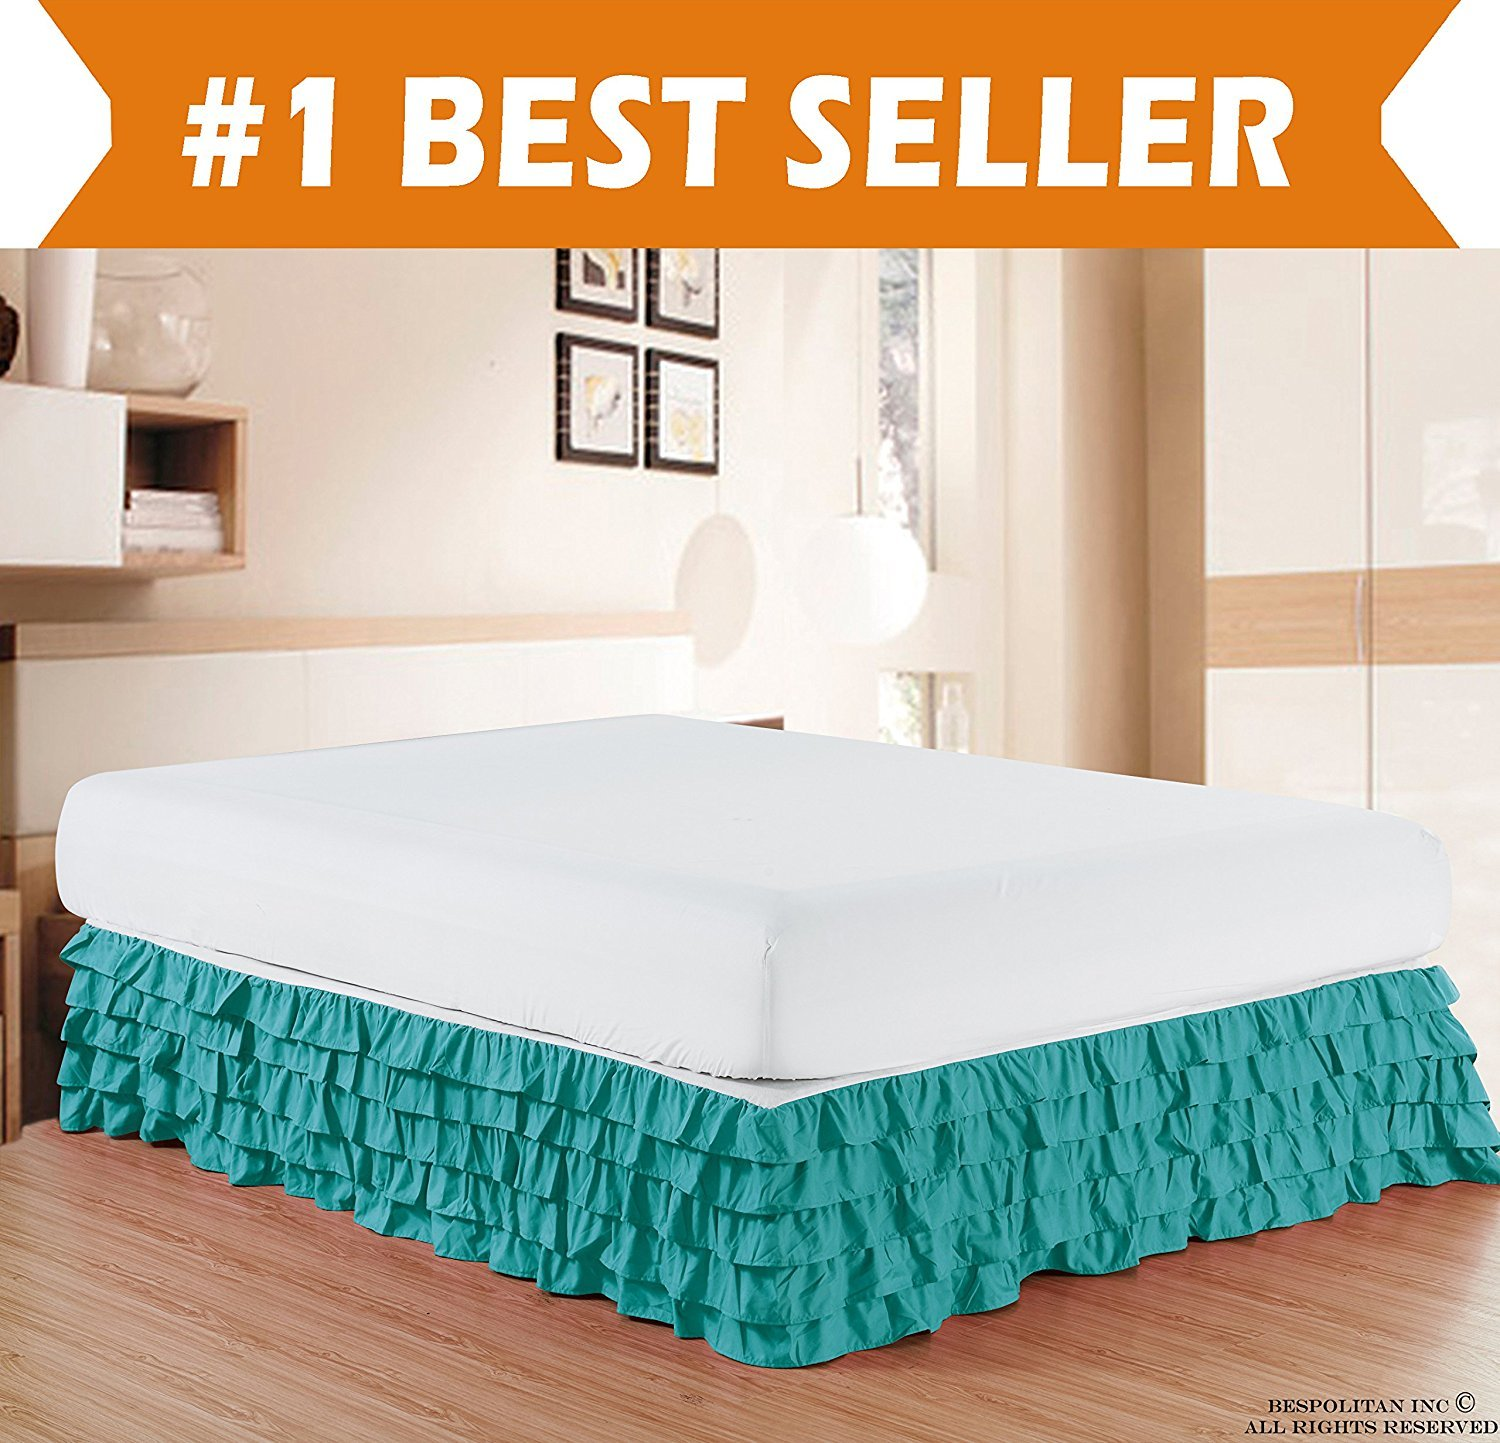 Elegant Comfort Luxurious Premium Quality 1500 Thread Count Wrinkle and Fade Resistant Egyptian Quality Microfiber Multi-Ruffle Bed Skirt - 15inch Drop, Full , Turquoise